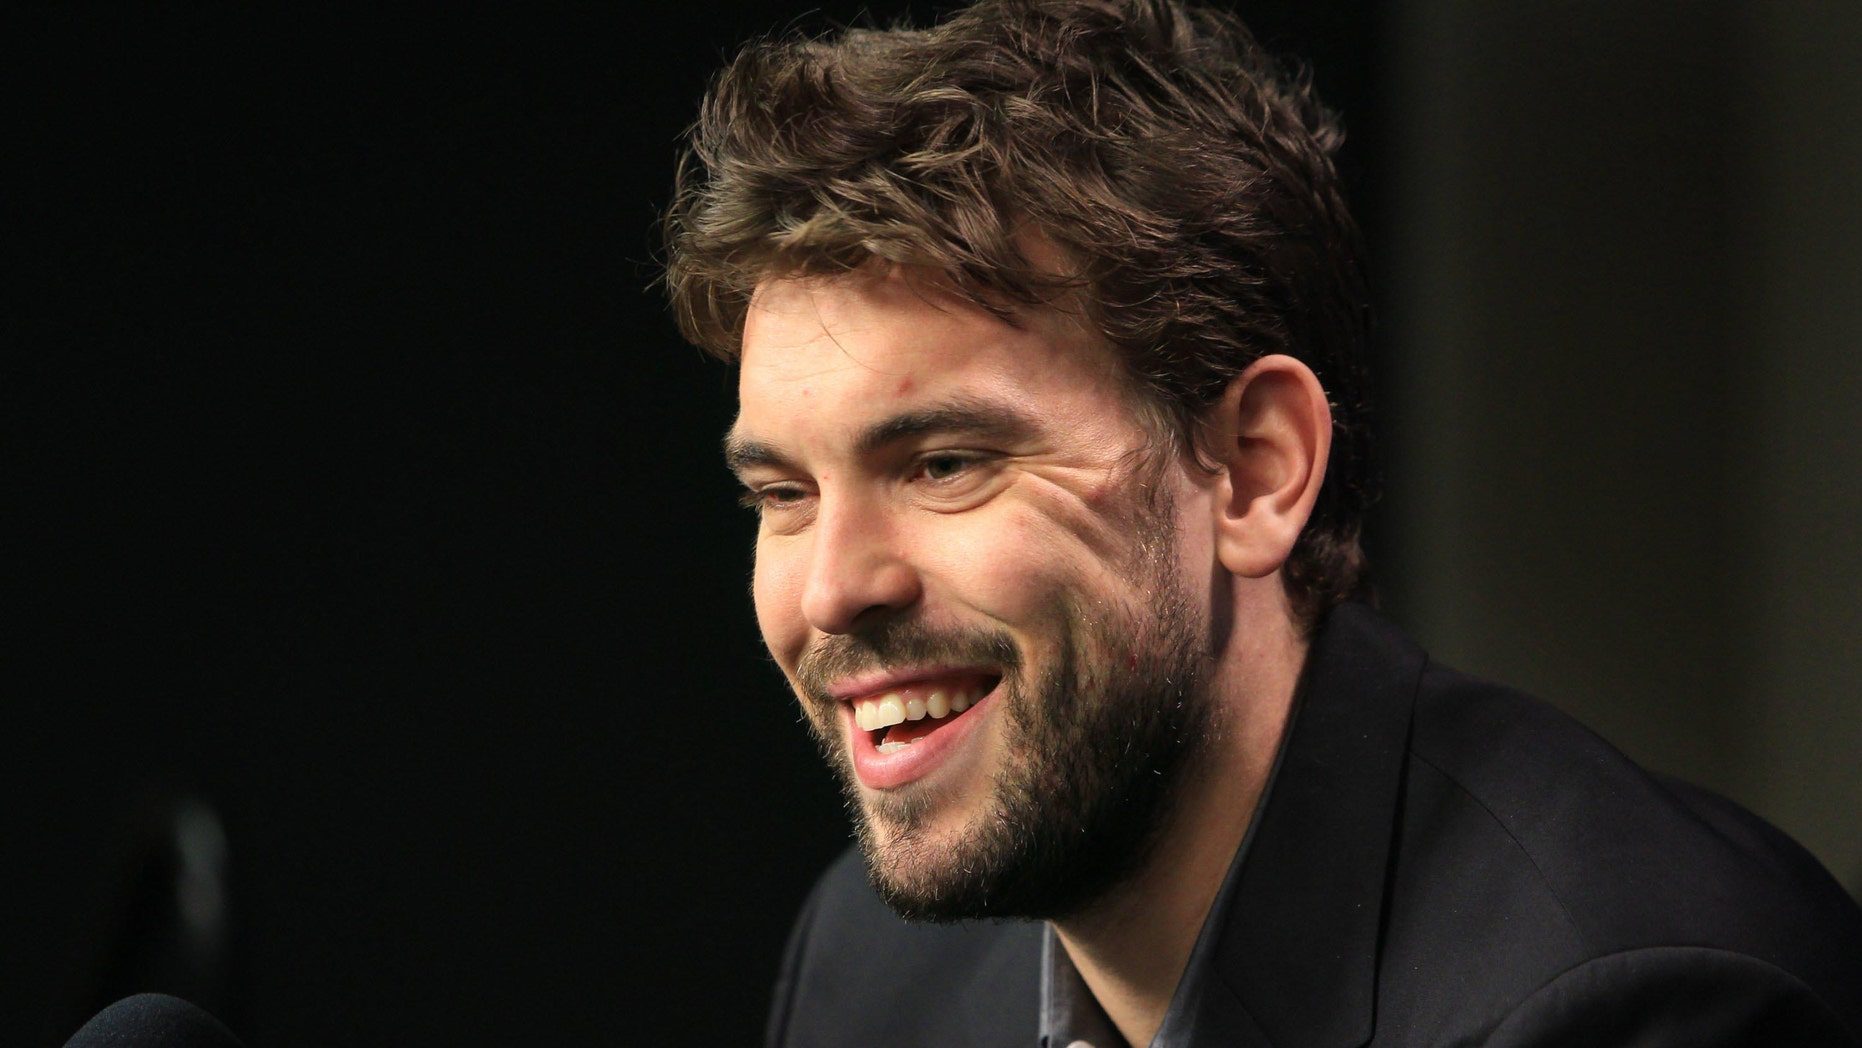 Memphis Grizzlies' Marc Gasol smiles during a press conference announcing his re-signing with the NBA basketball team, Wednesday, Dec. 14, 2011, in Memphis, Tenn. The deal keeps intact the core of a team that made the Western Conference semifinals last spring. (AP Photo/The Commercial Appeal, Nikki Boertman)